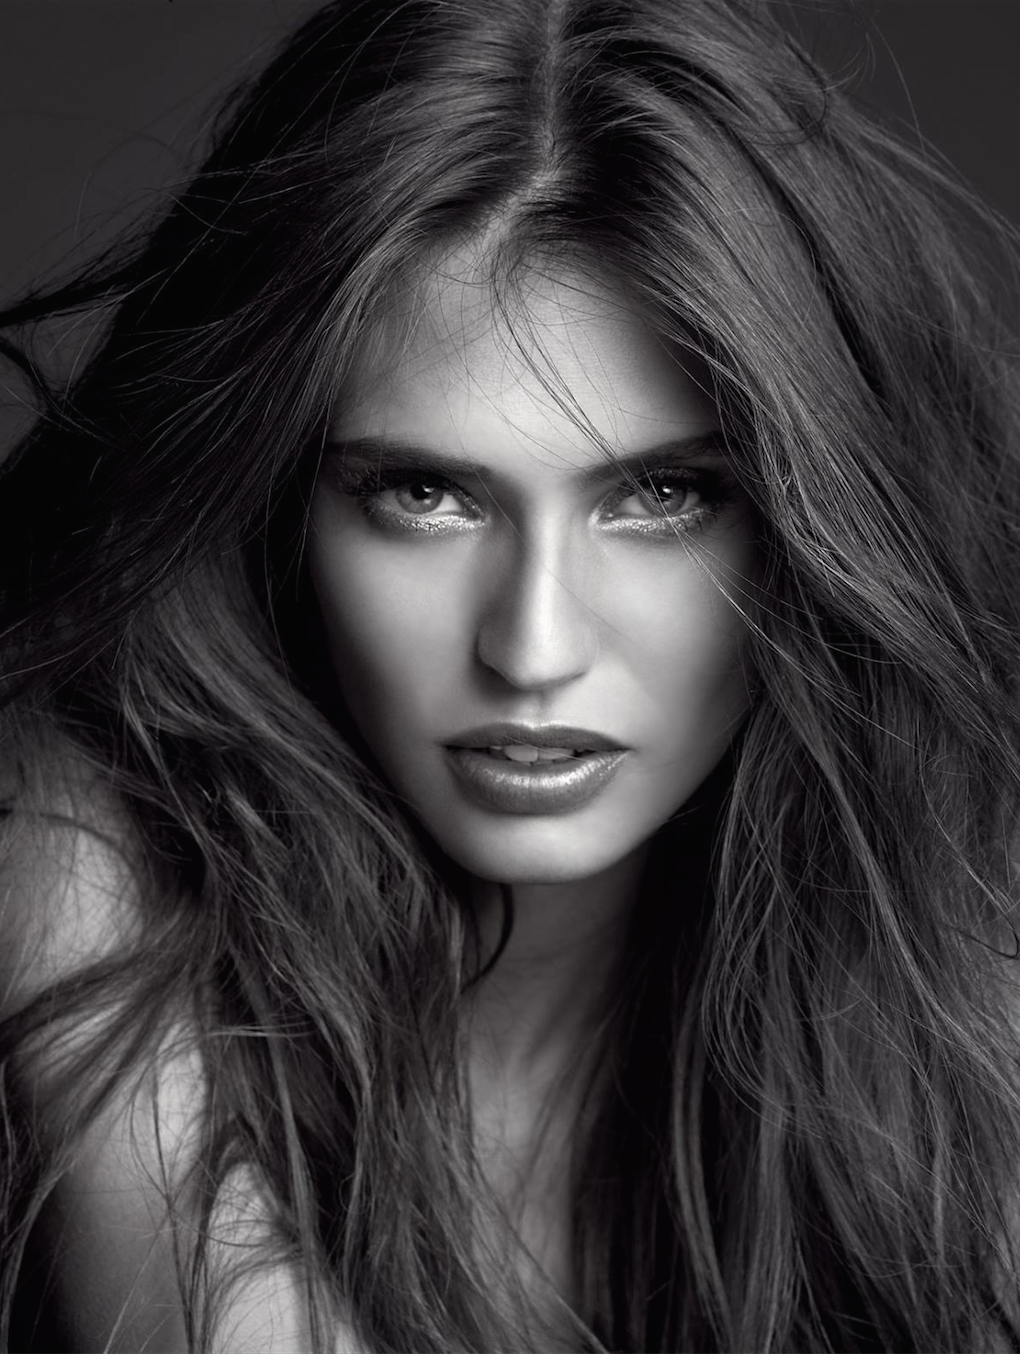 BIANCA BALTI for L'ORÉAL PARIS